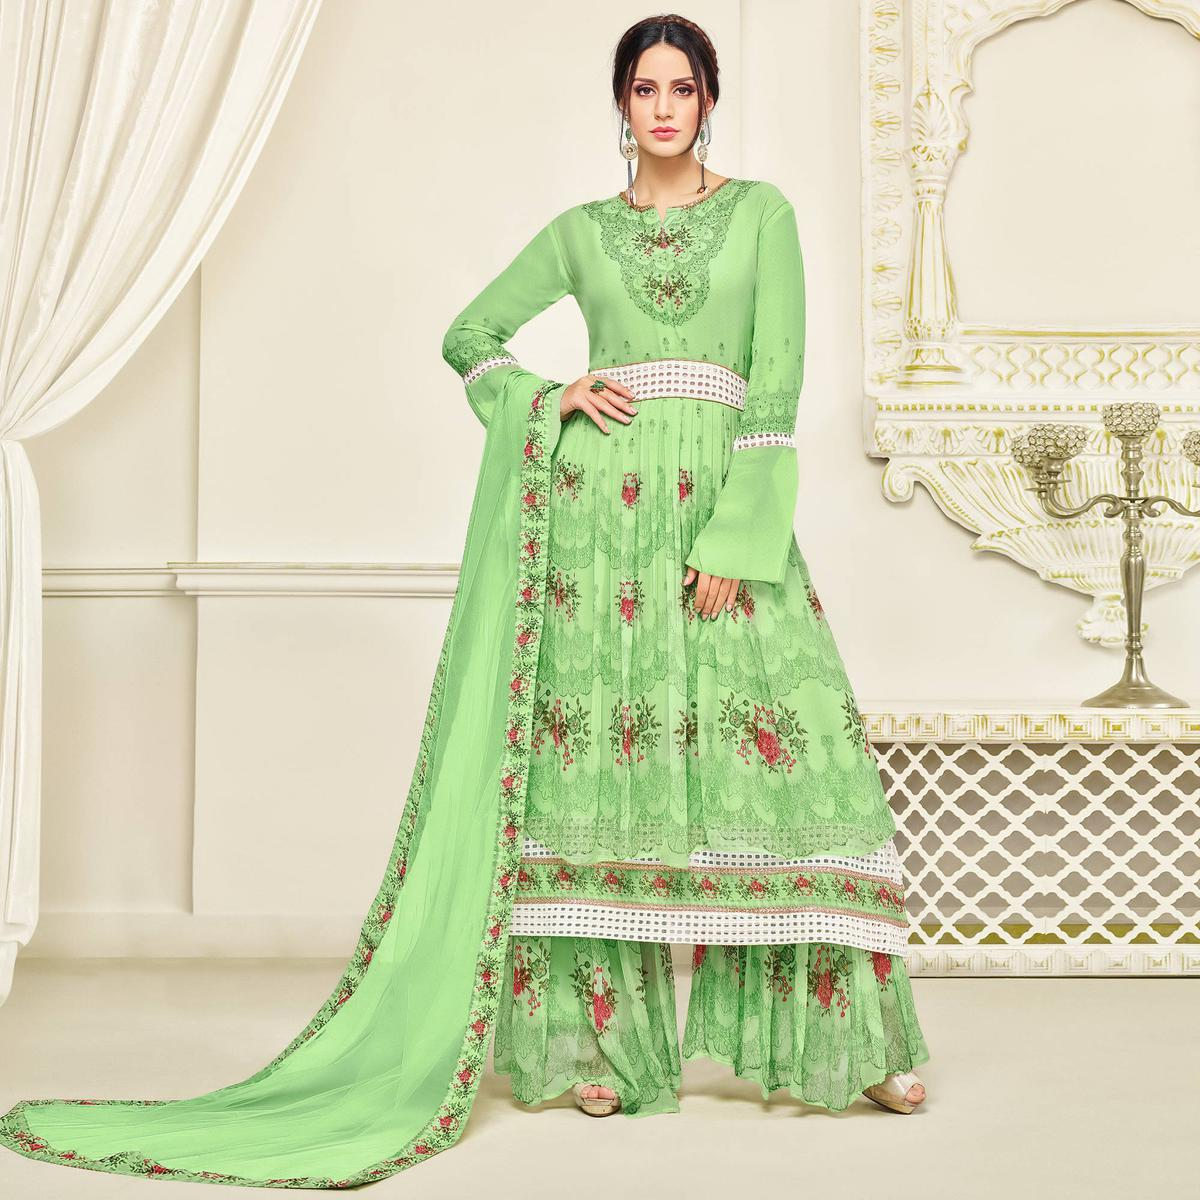 Ravishing Green Colored Party Wear Printed Faux Georgette Palazzo Suit